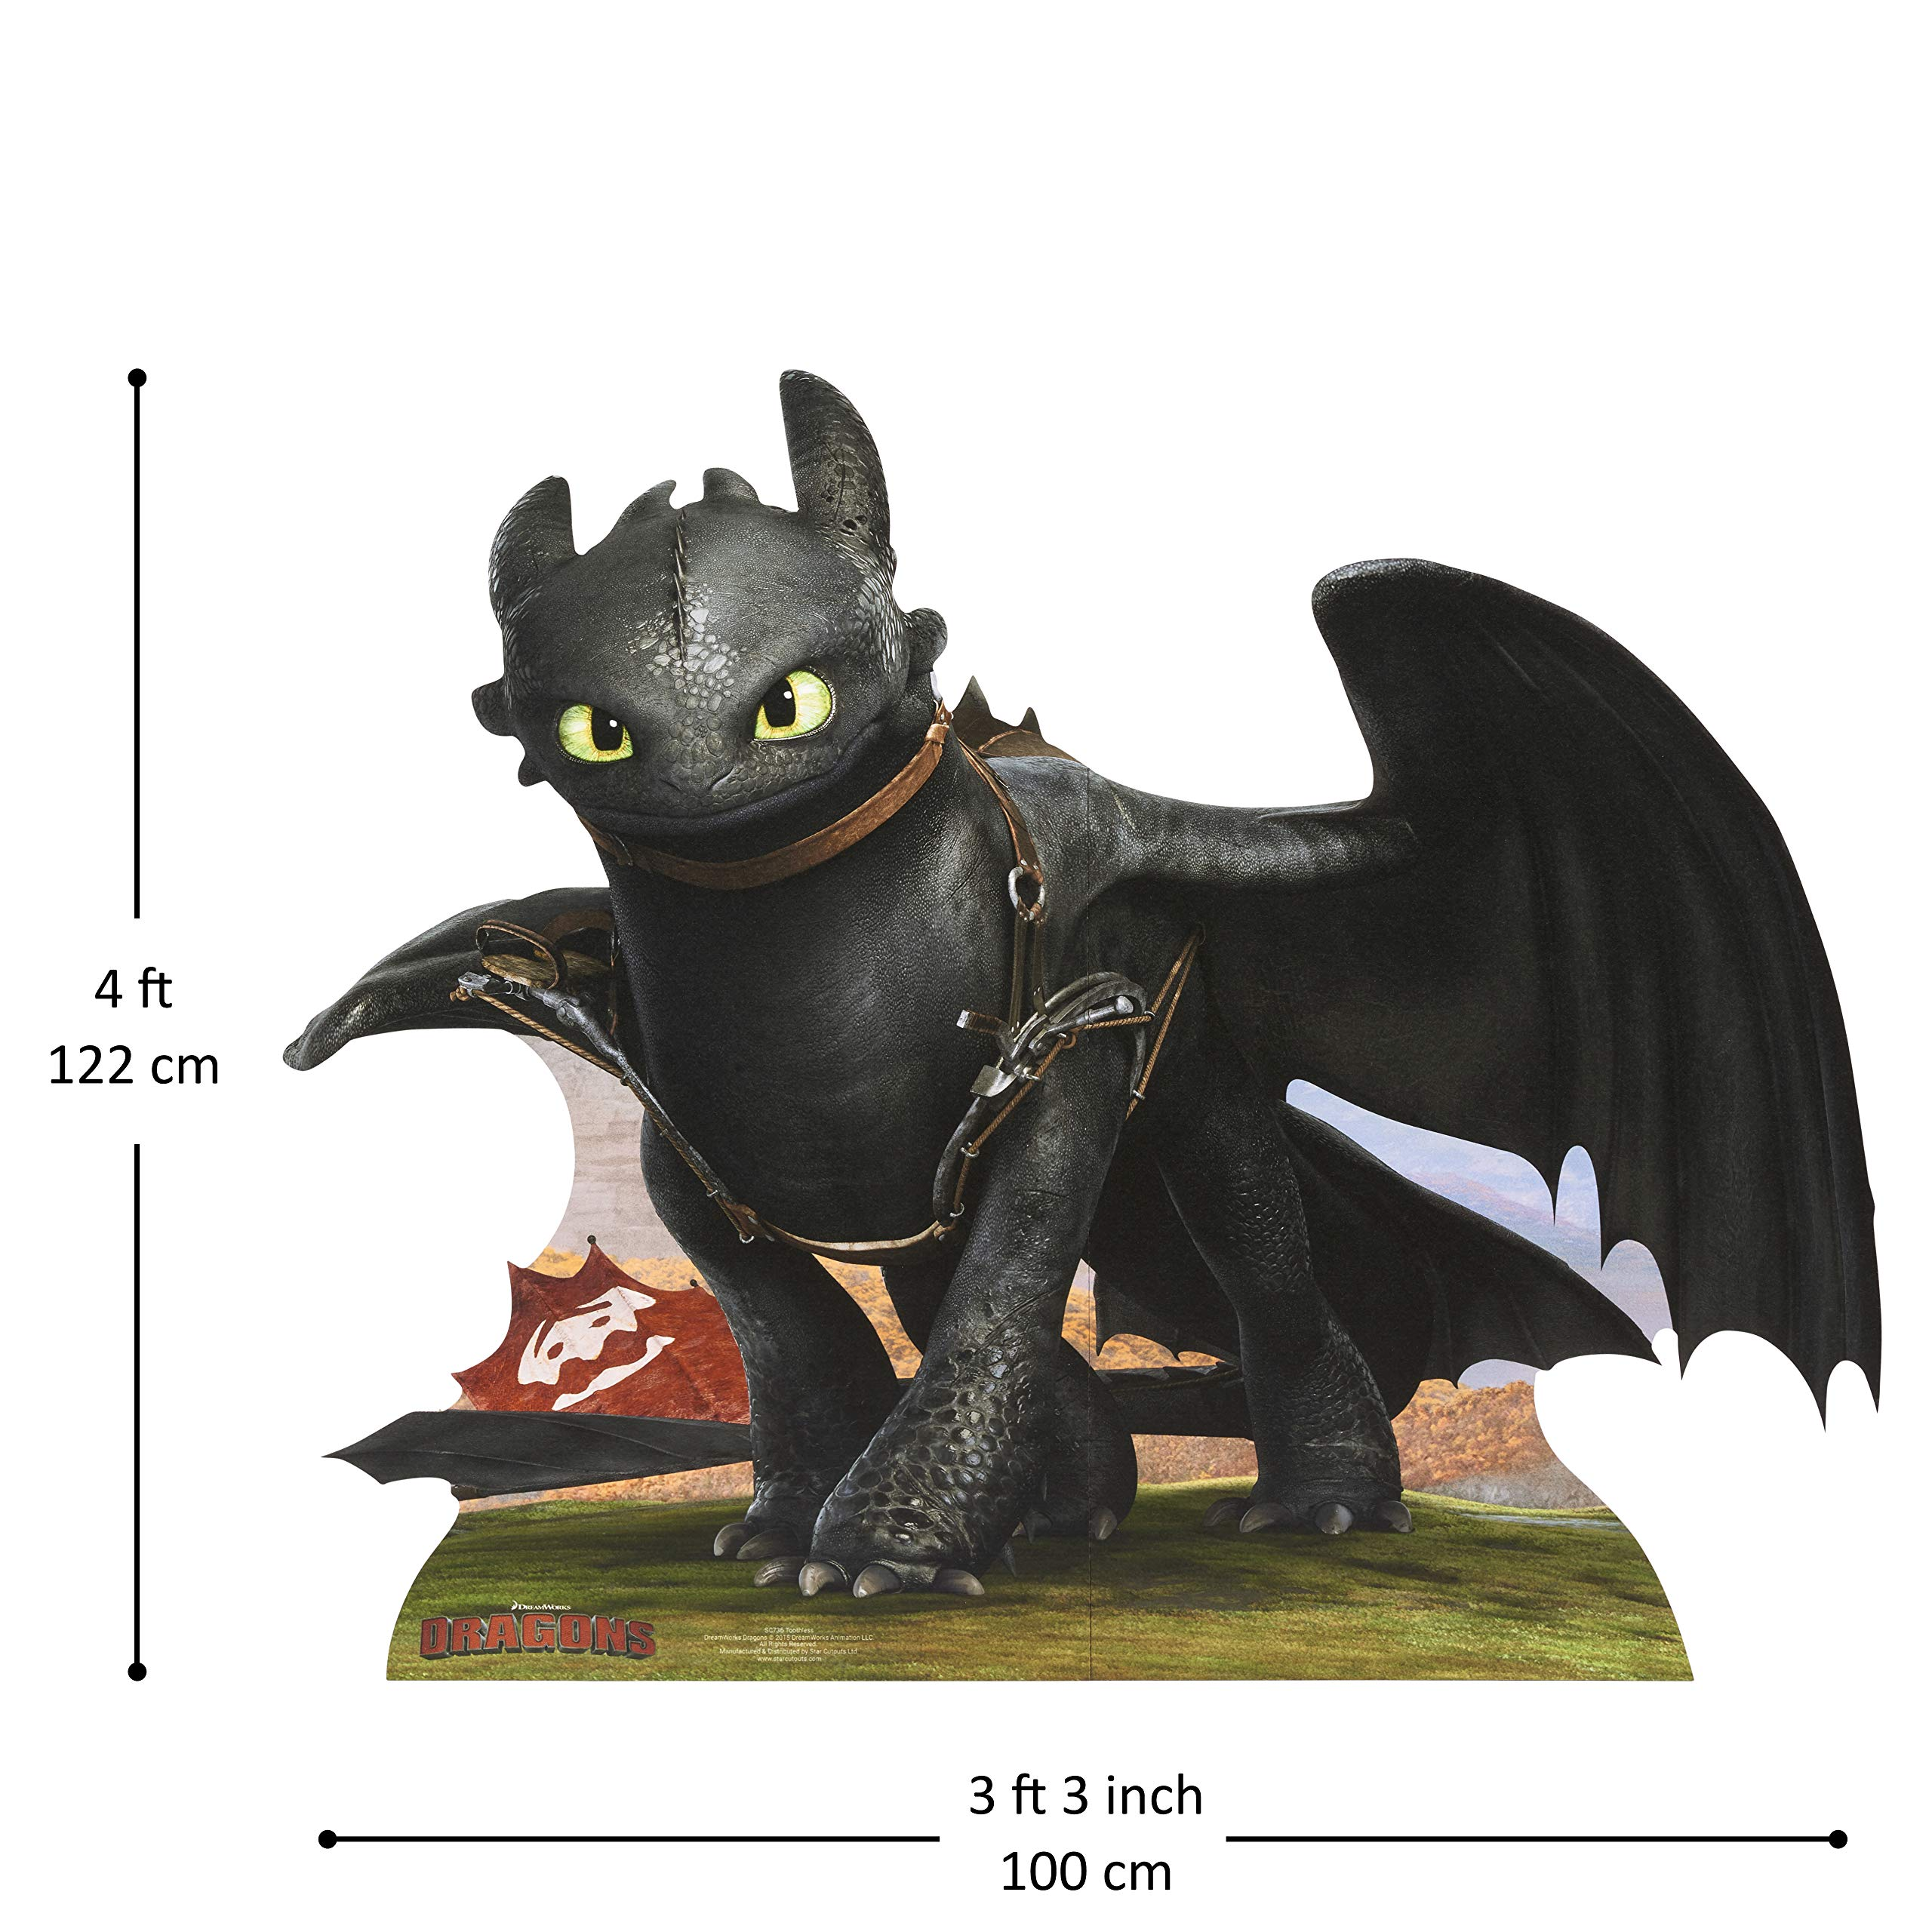 How to Train Your Dragon Life Size Cutout of Toothless The Dragon by DreamWorks How to Train Your Dragon